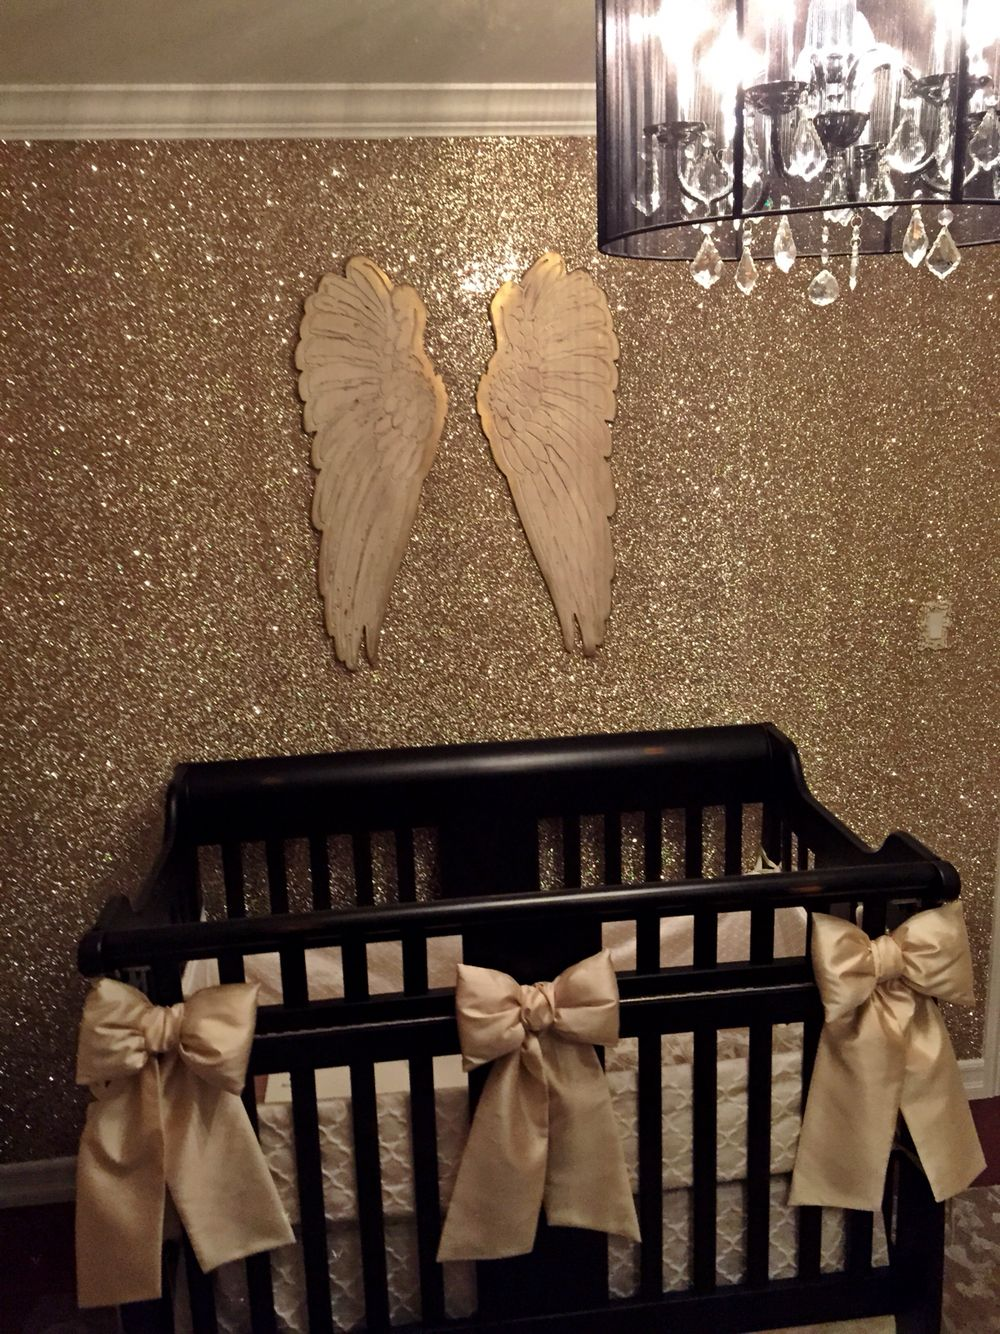 Angel Nursery For Hartlyn Gold Glitter Wallpaper By Glitterbug In Sand Color